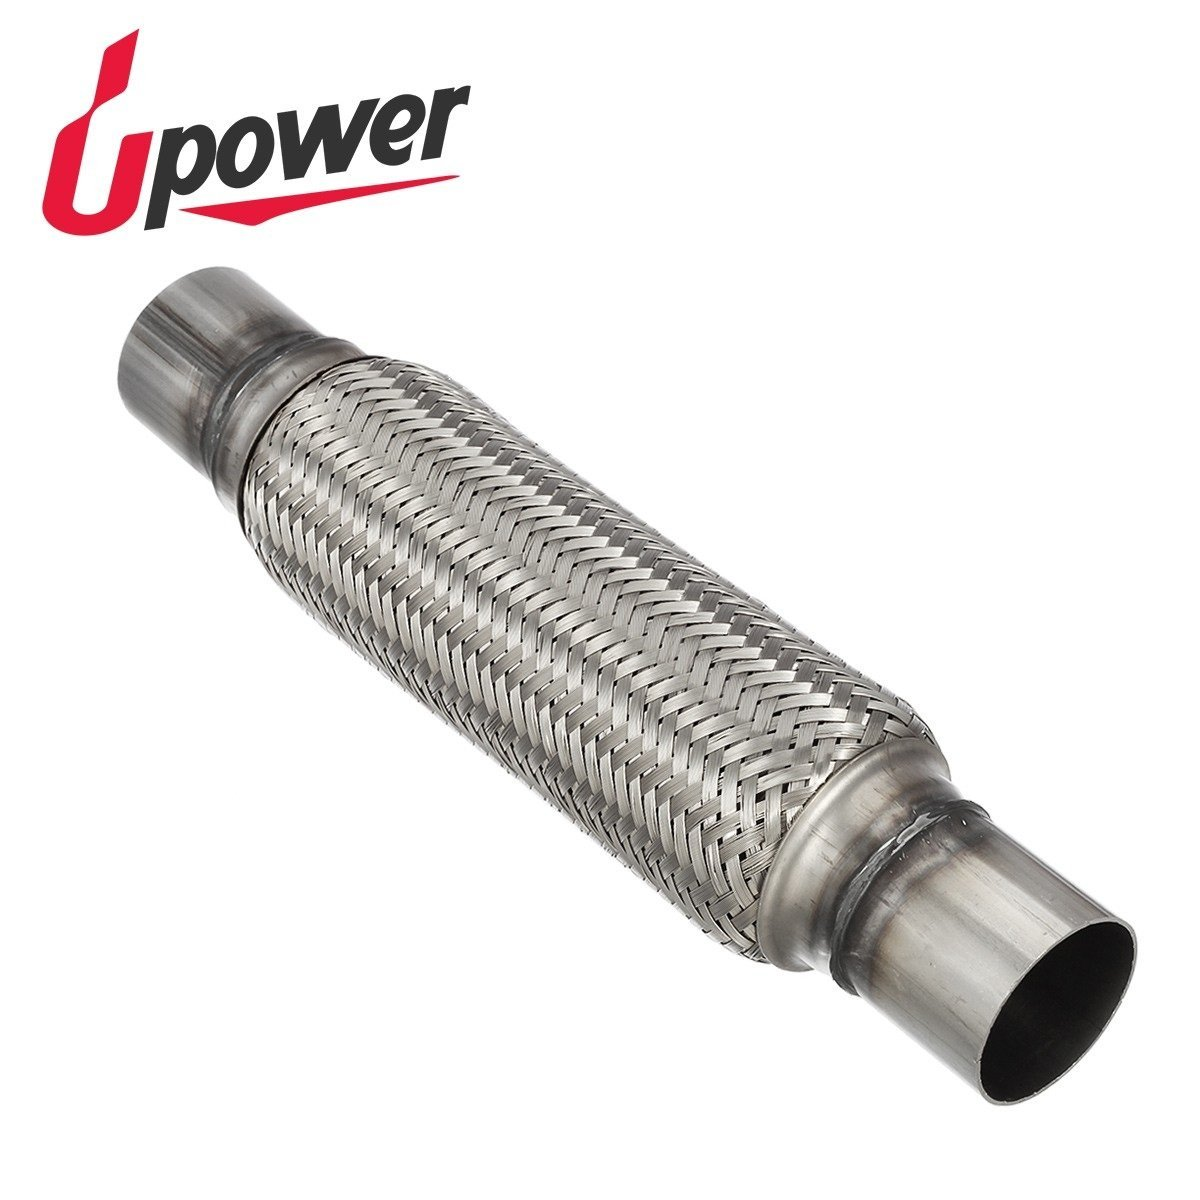 Upower 2 Inch Diameter Exhaust Flex Extension Pipe Connector Tube, 4'+10' 14'OAL Heavy Duty Stainless Steel 4+10 14OAL Heavy Duty Stainless Steel Partssquare